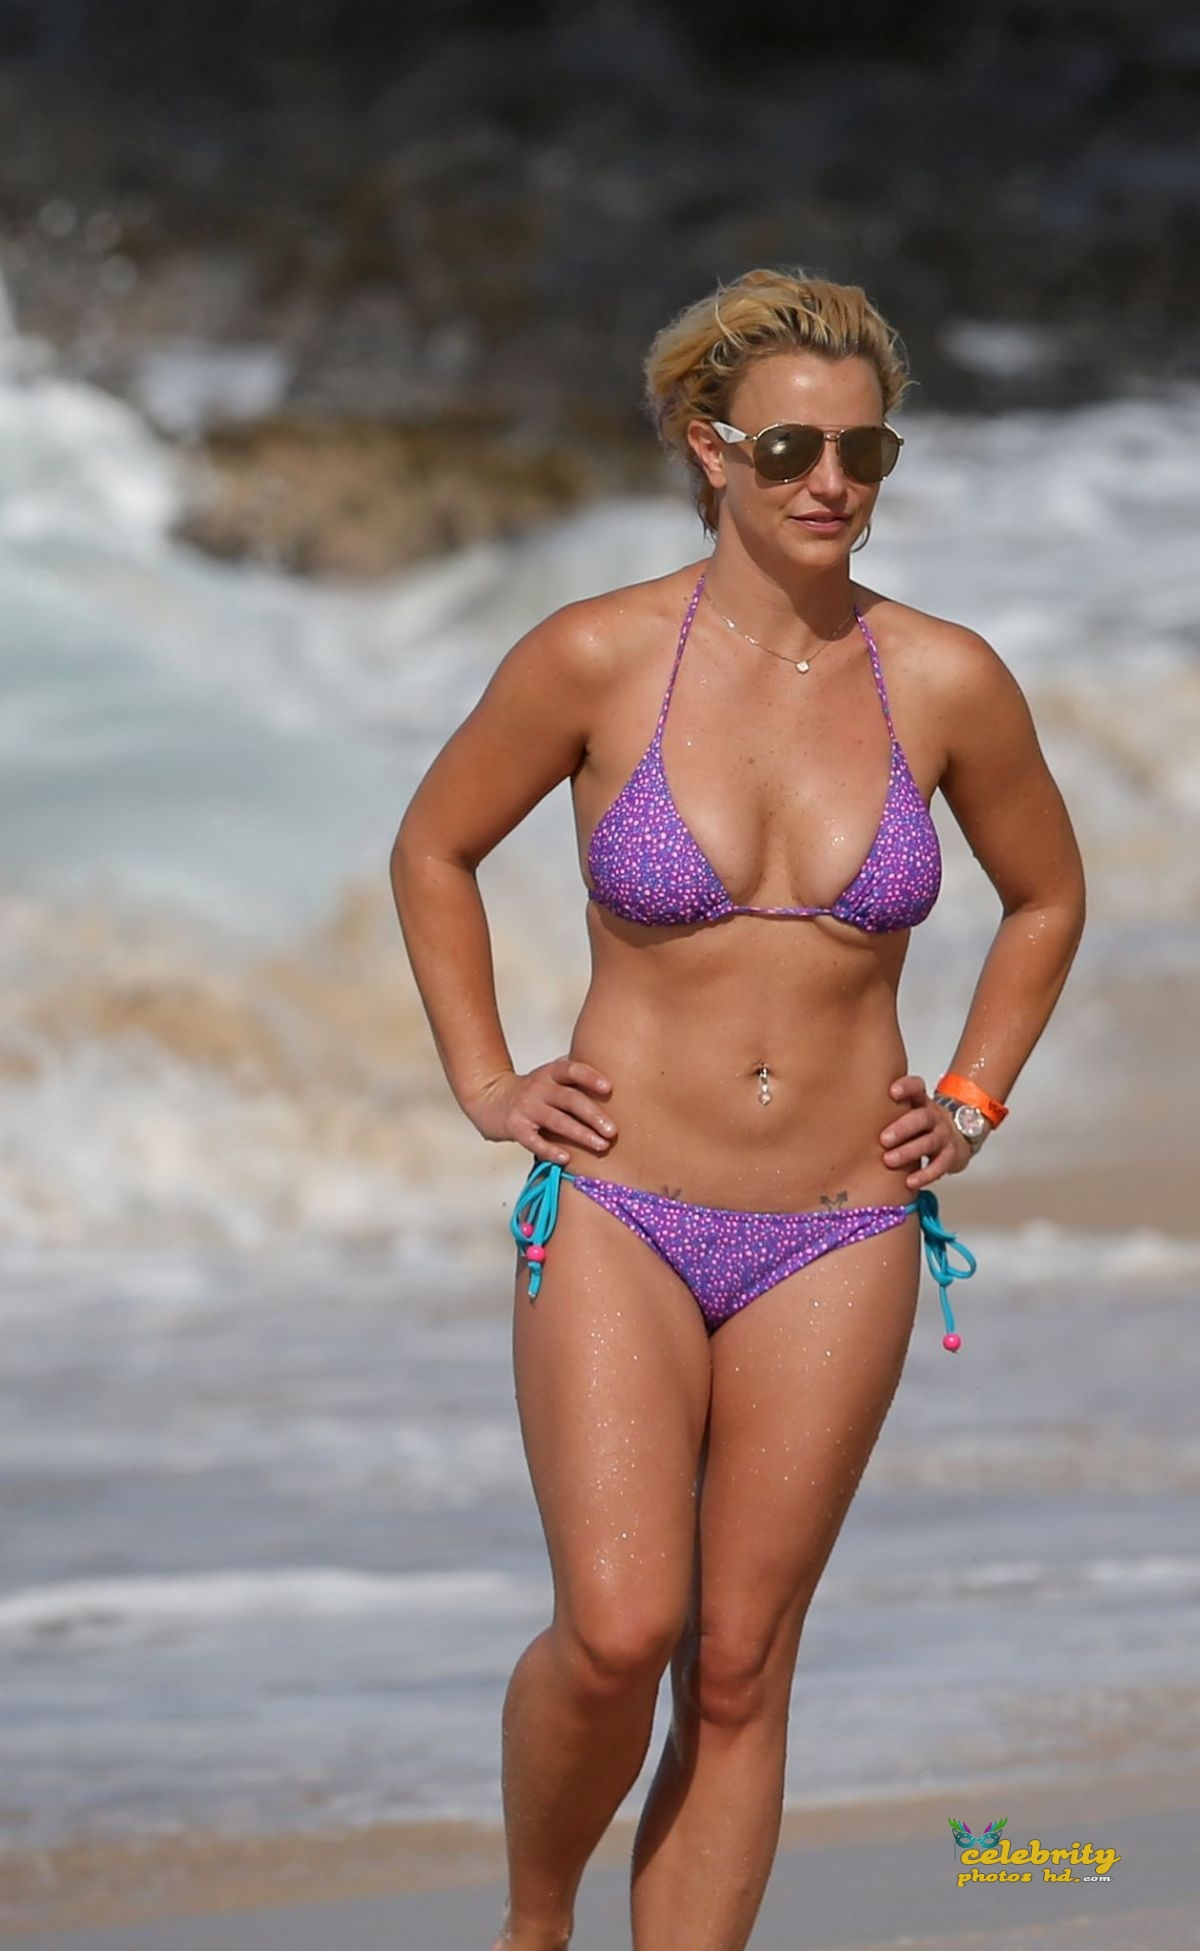 britney-spears-in-bikini-at-a-beach-in-hawaii-07-23-2015_15